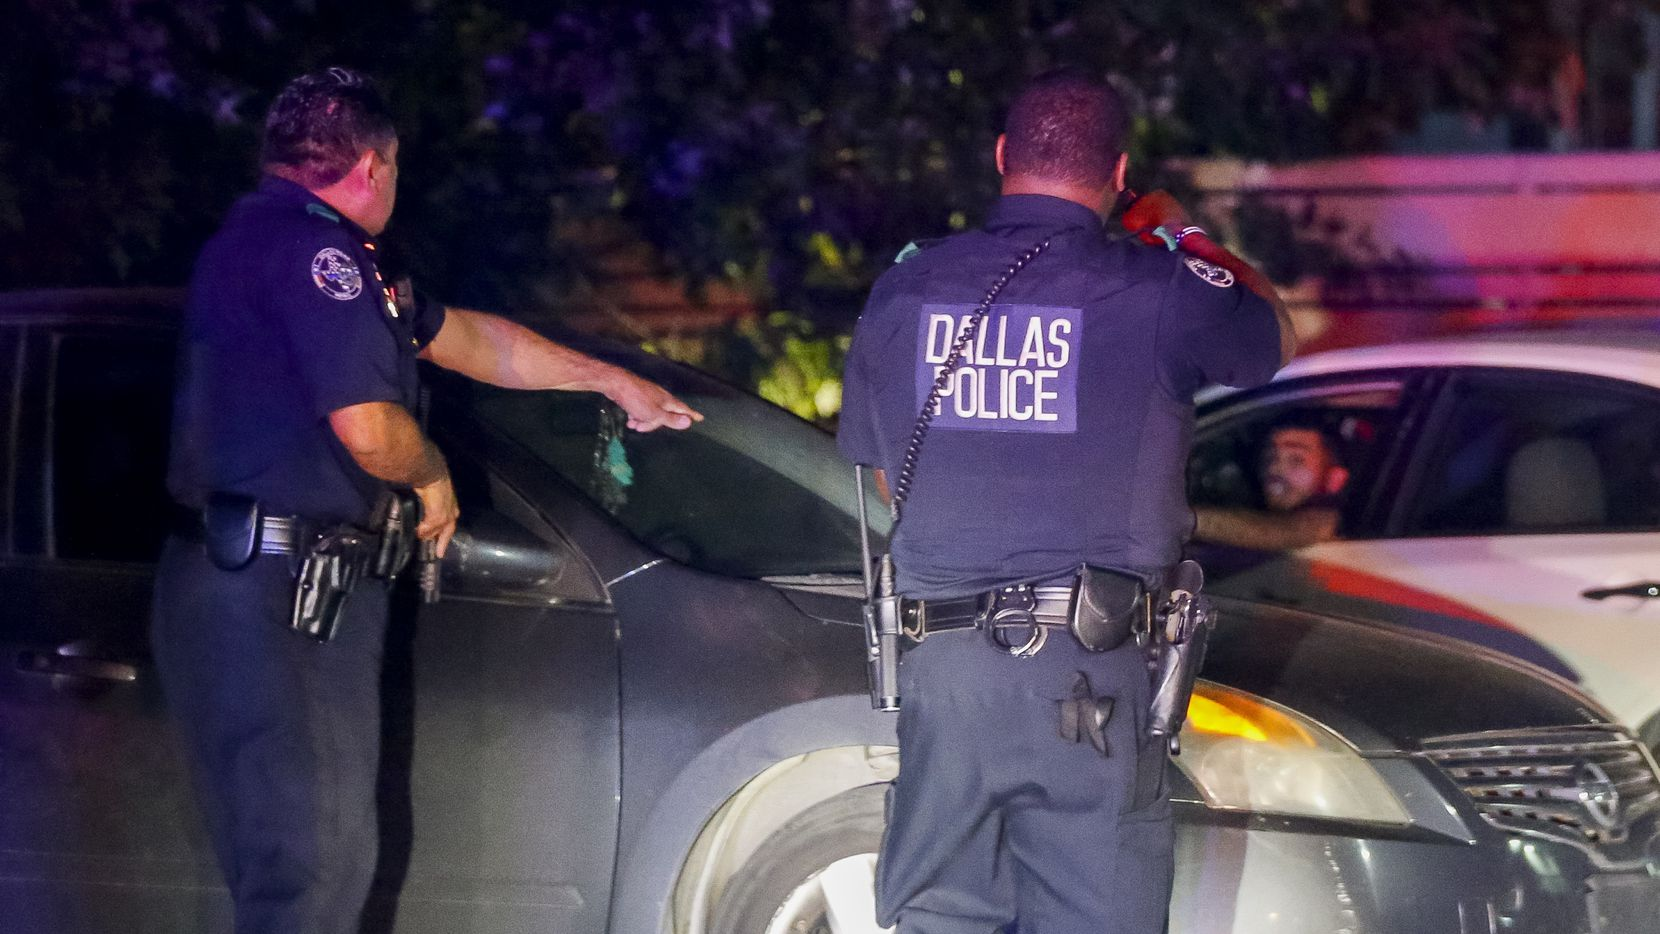 Dallas Police Deputy Chief Israel Herrera (left) and another officer give commands to the driver of a vehicle during a felony traffic stop on Friday, Sept. 24, 2021, in Dallas. Herrera was on patrol in downtown when he witnessed gunshots fired from a vehicle, he then followed the vehicle until more officers arrived and were able to assist. (Elias Valverde II/The Dallas Morning News)